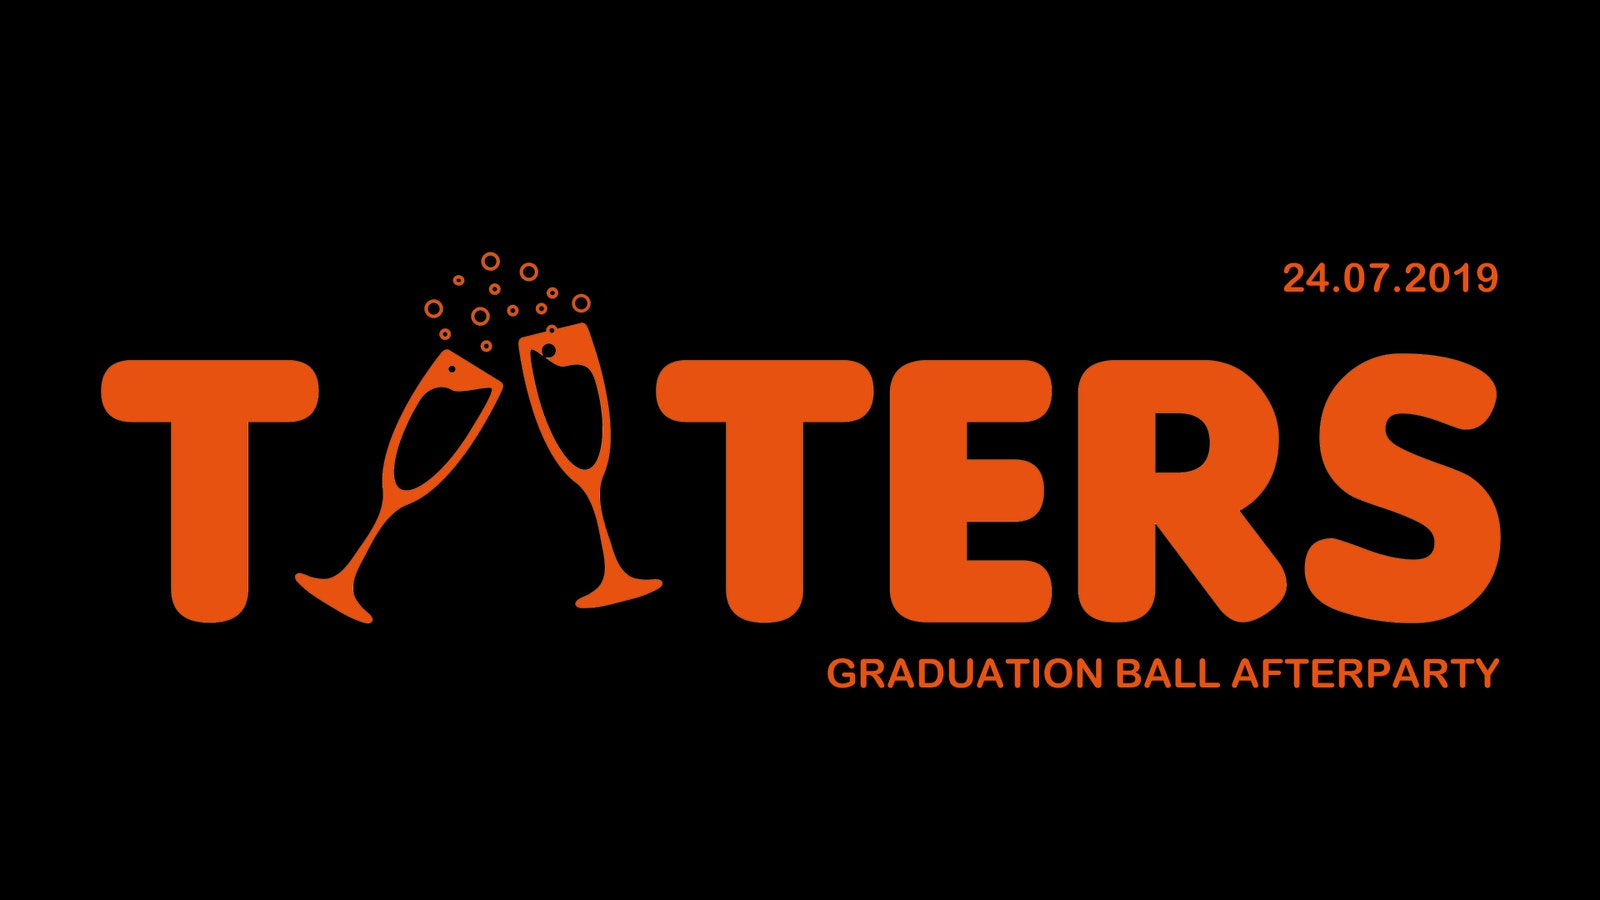 Tooters Graduation Afterparty